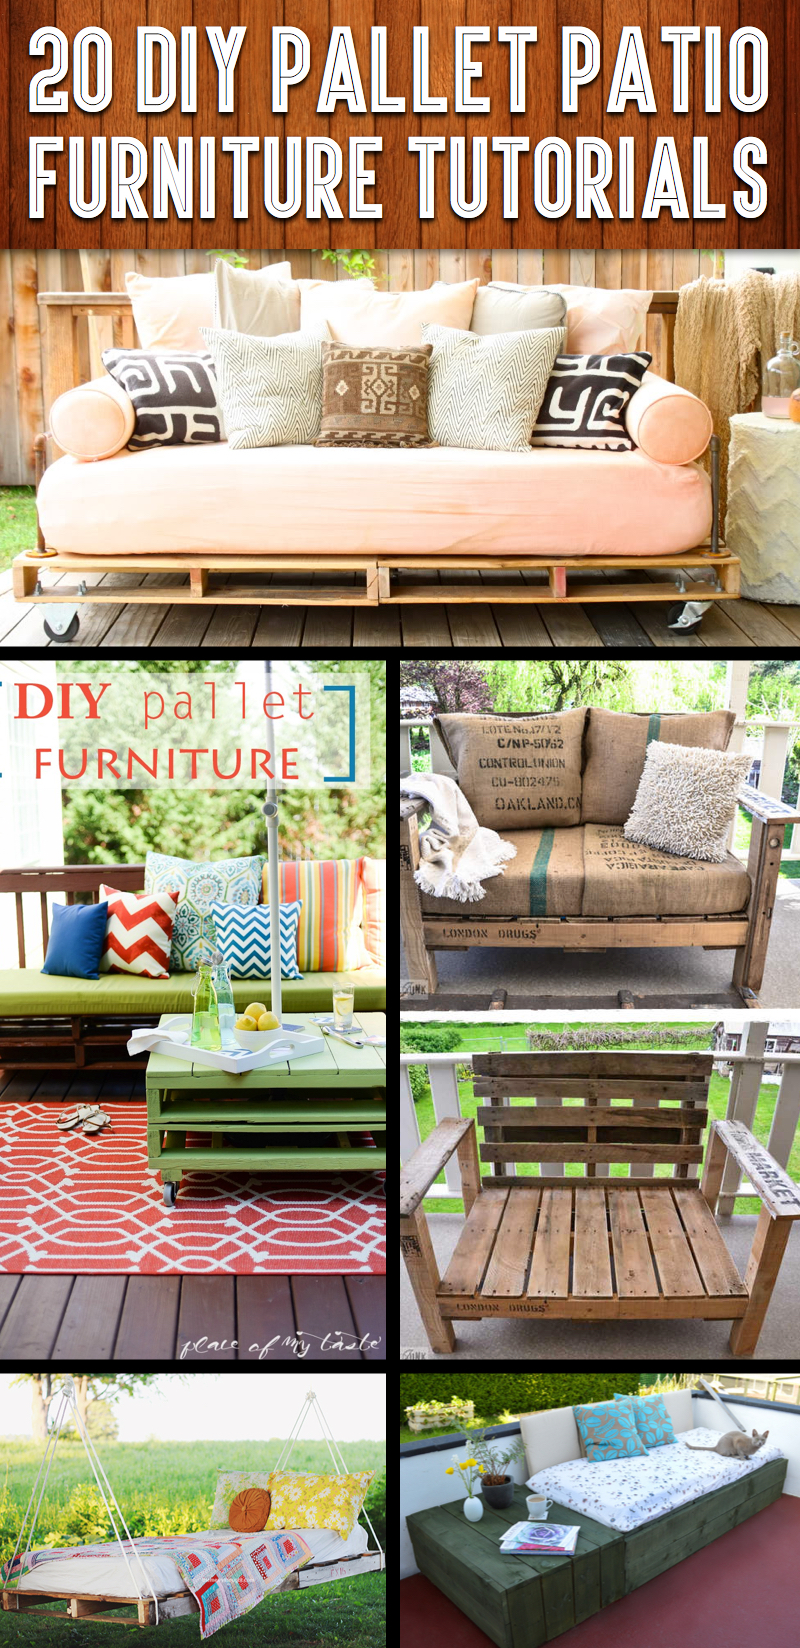 20 diy pallet patio furniture tutorials for a chic and practical outdoor patio - Garden Furniture Crates